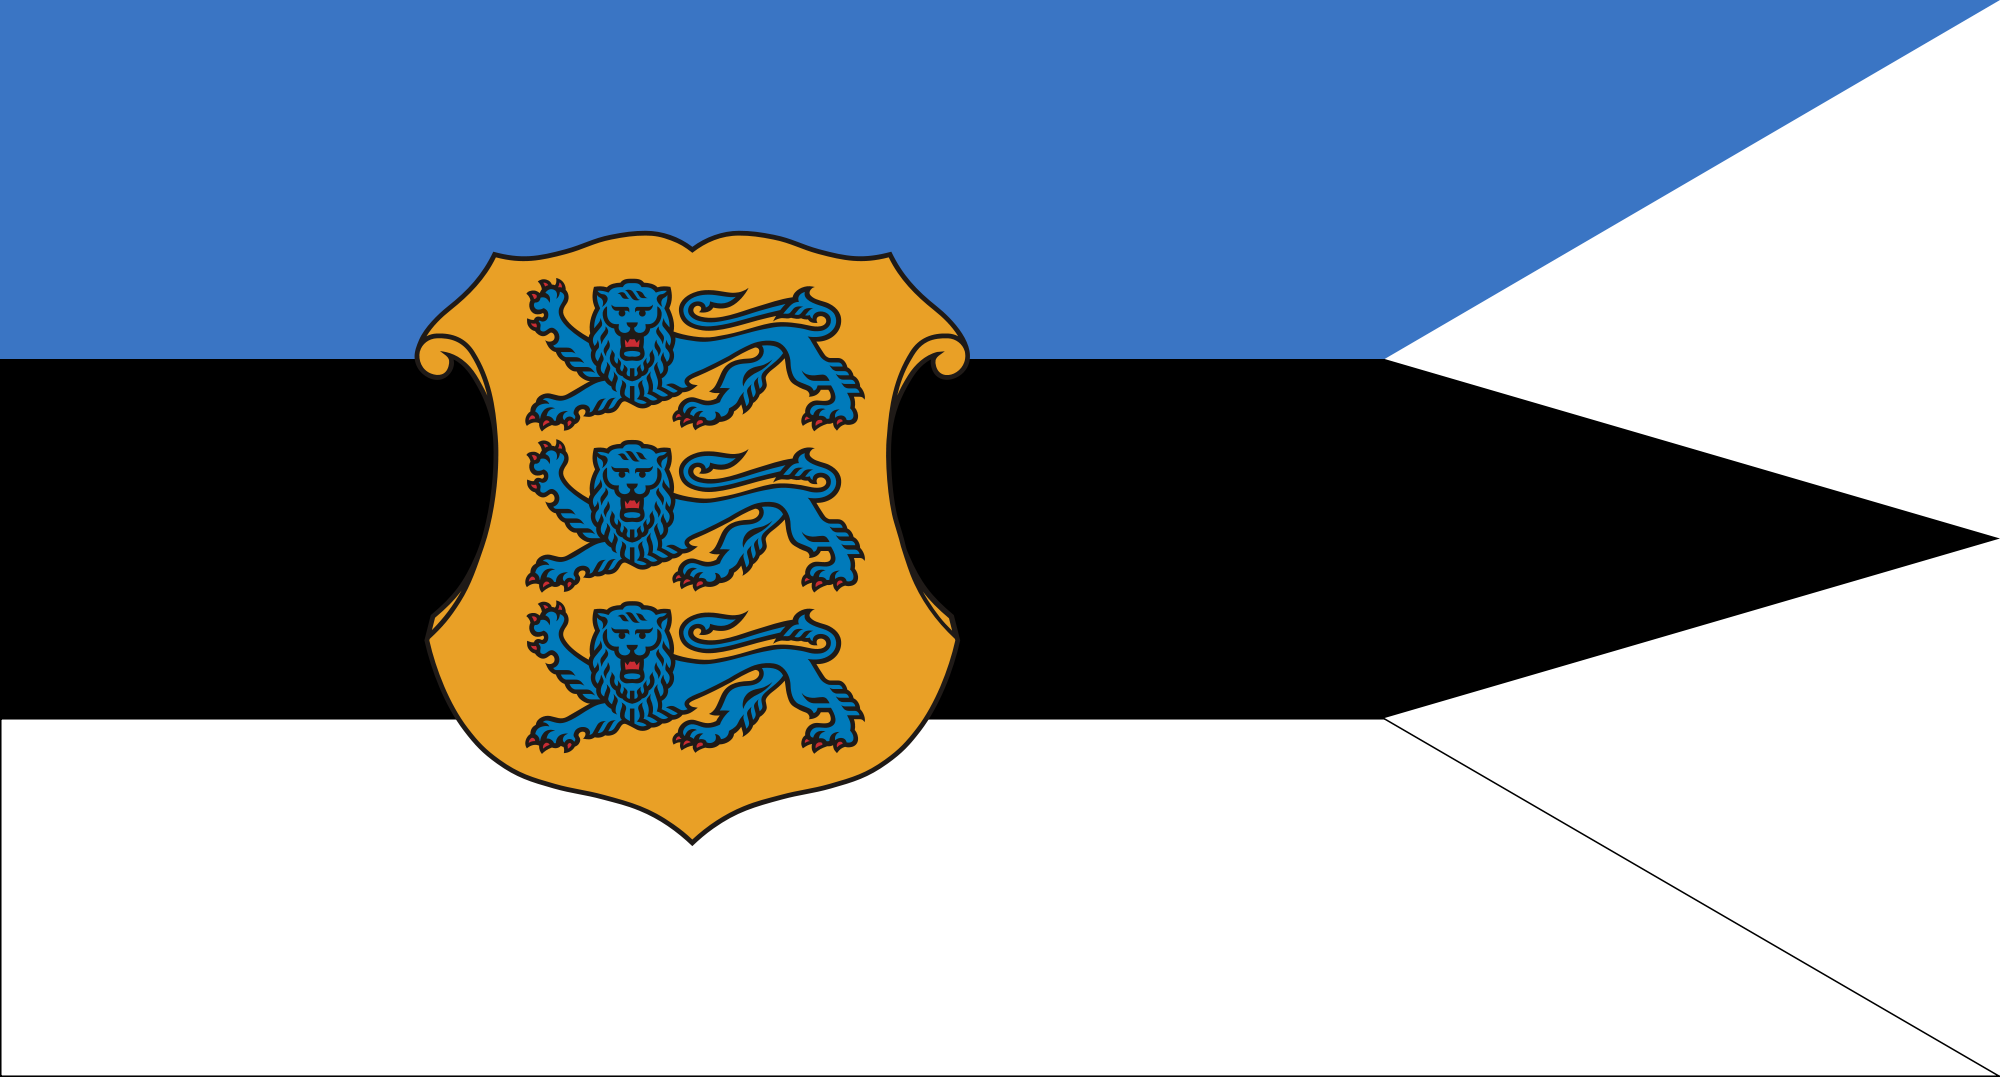 Estonia (Naval ensign)